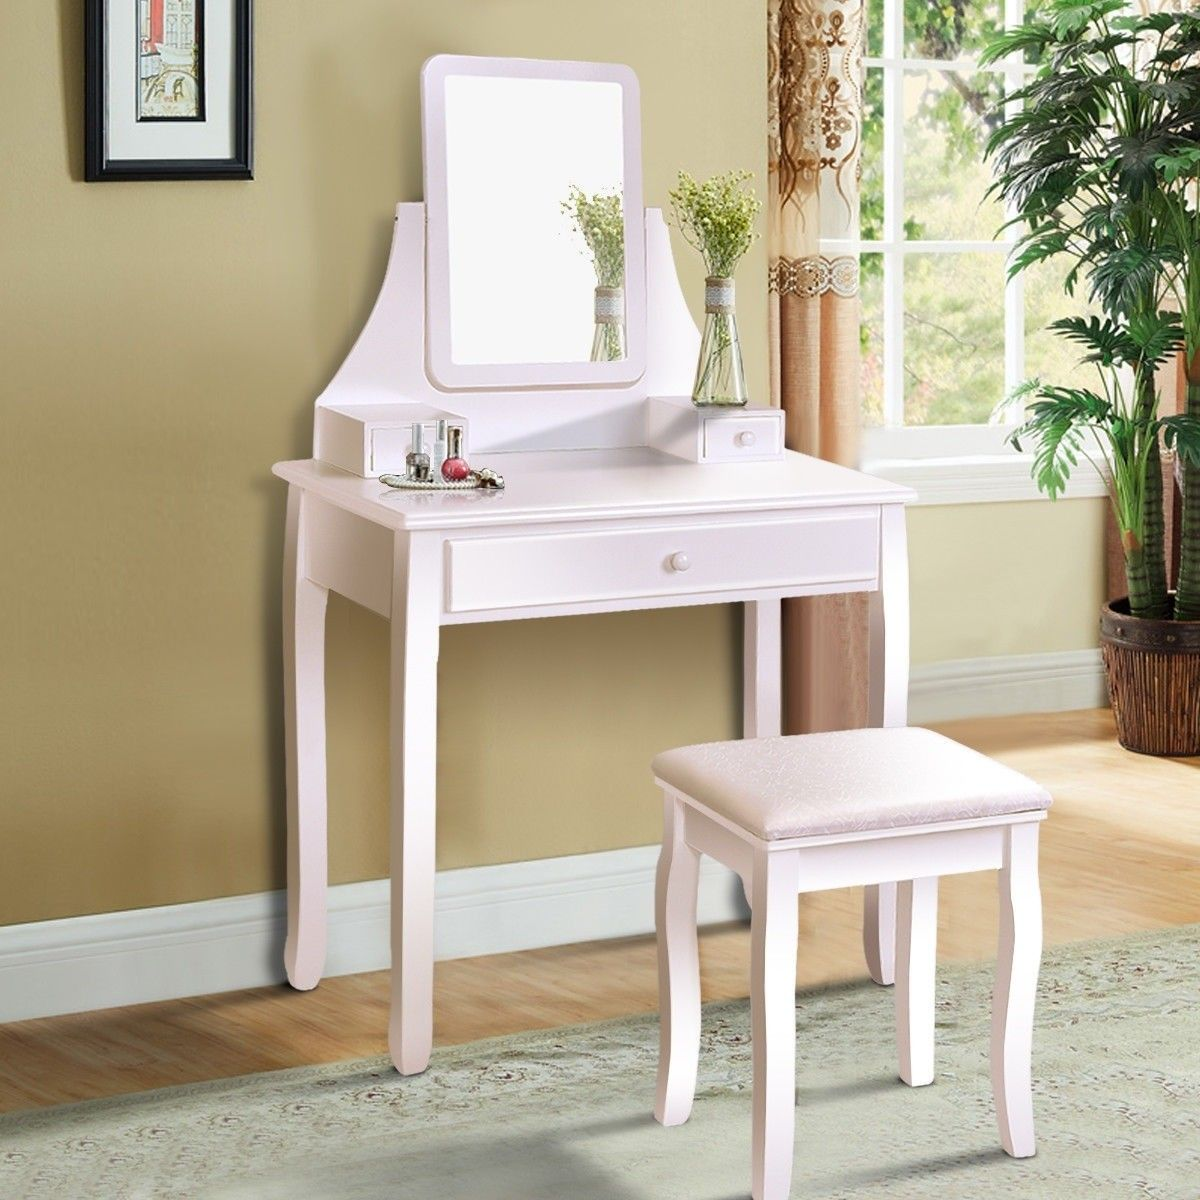 Square mirrored vanity dressing table set with storage boxes